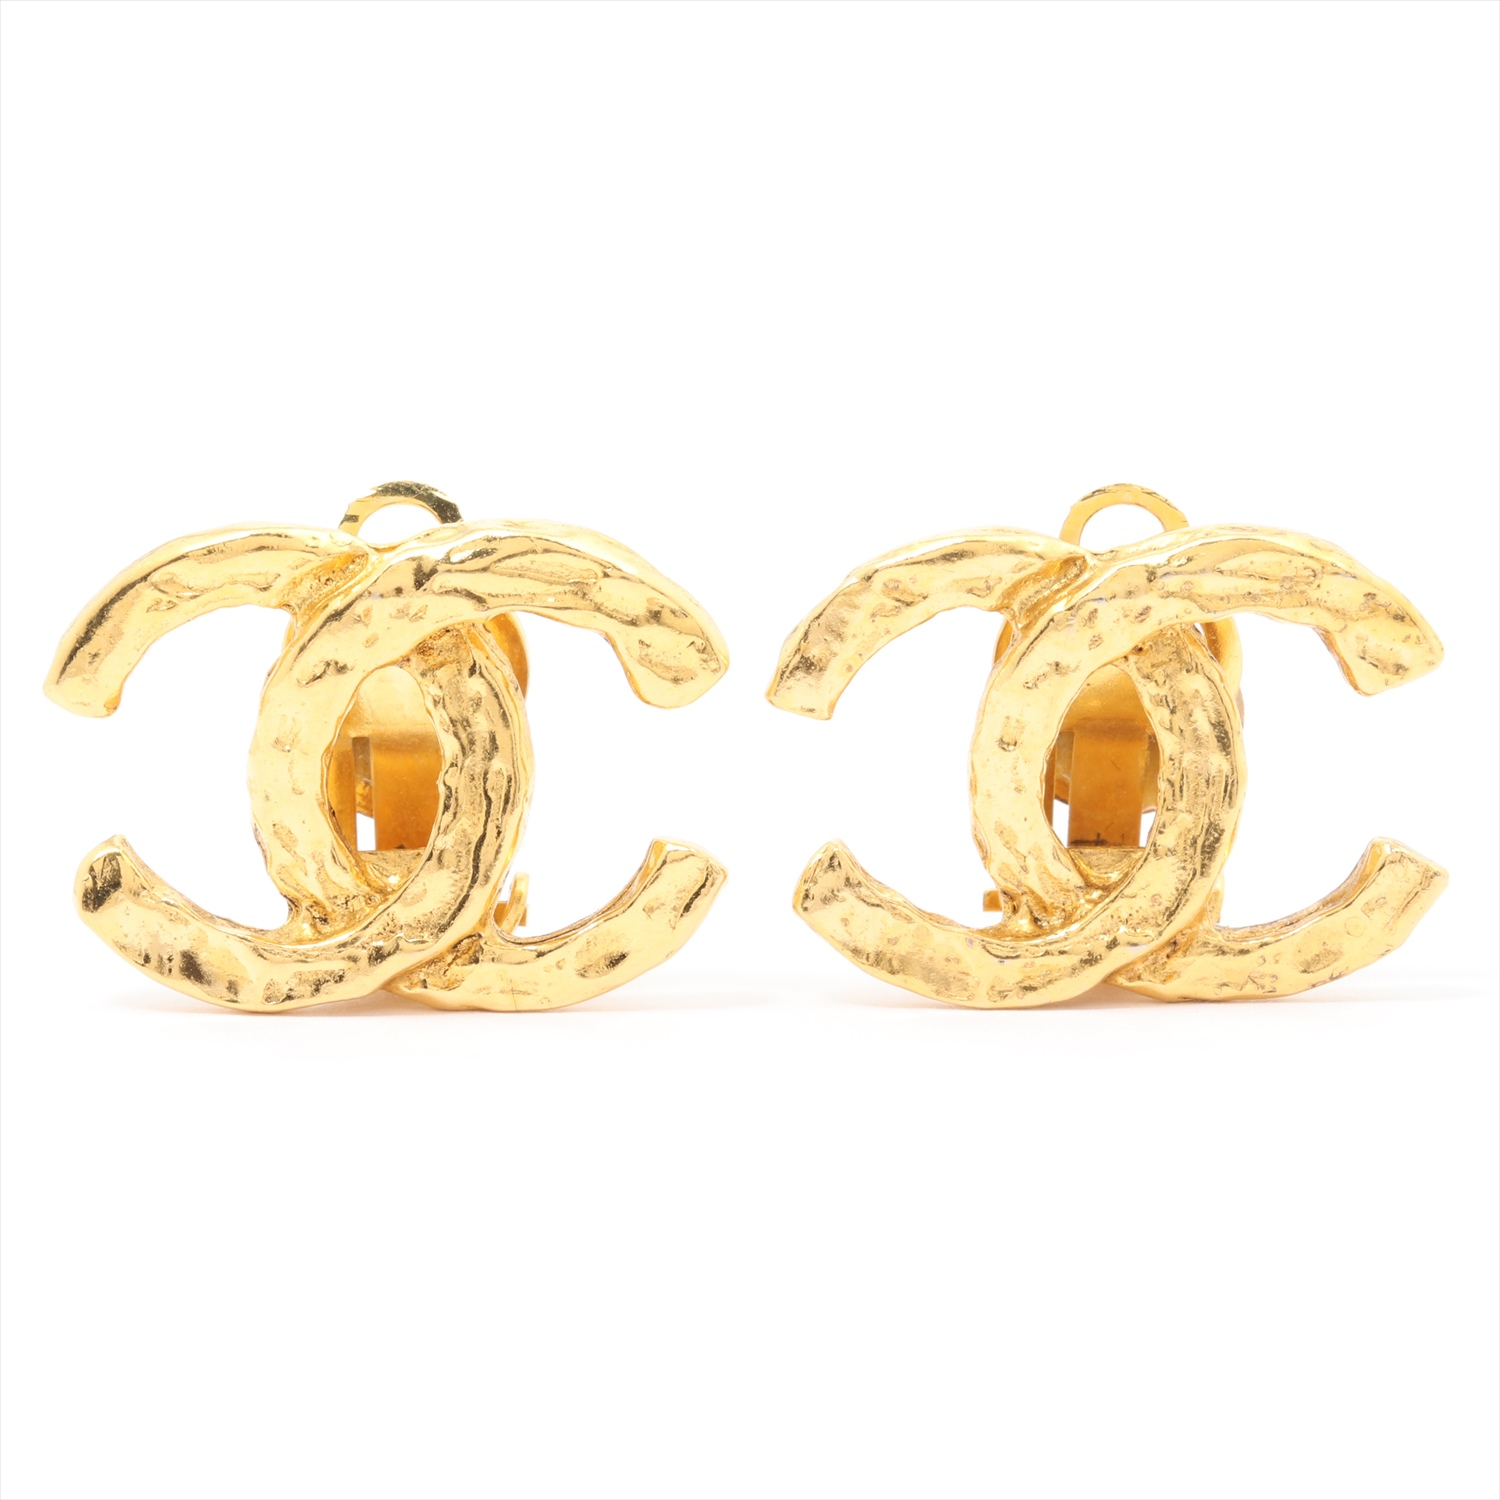 [Used goods] Chanel Coco mark earrings (for both ears) GP Gold